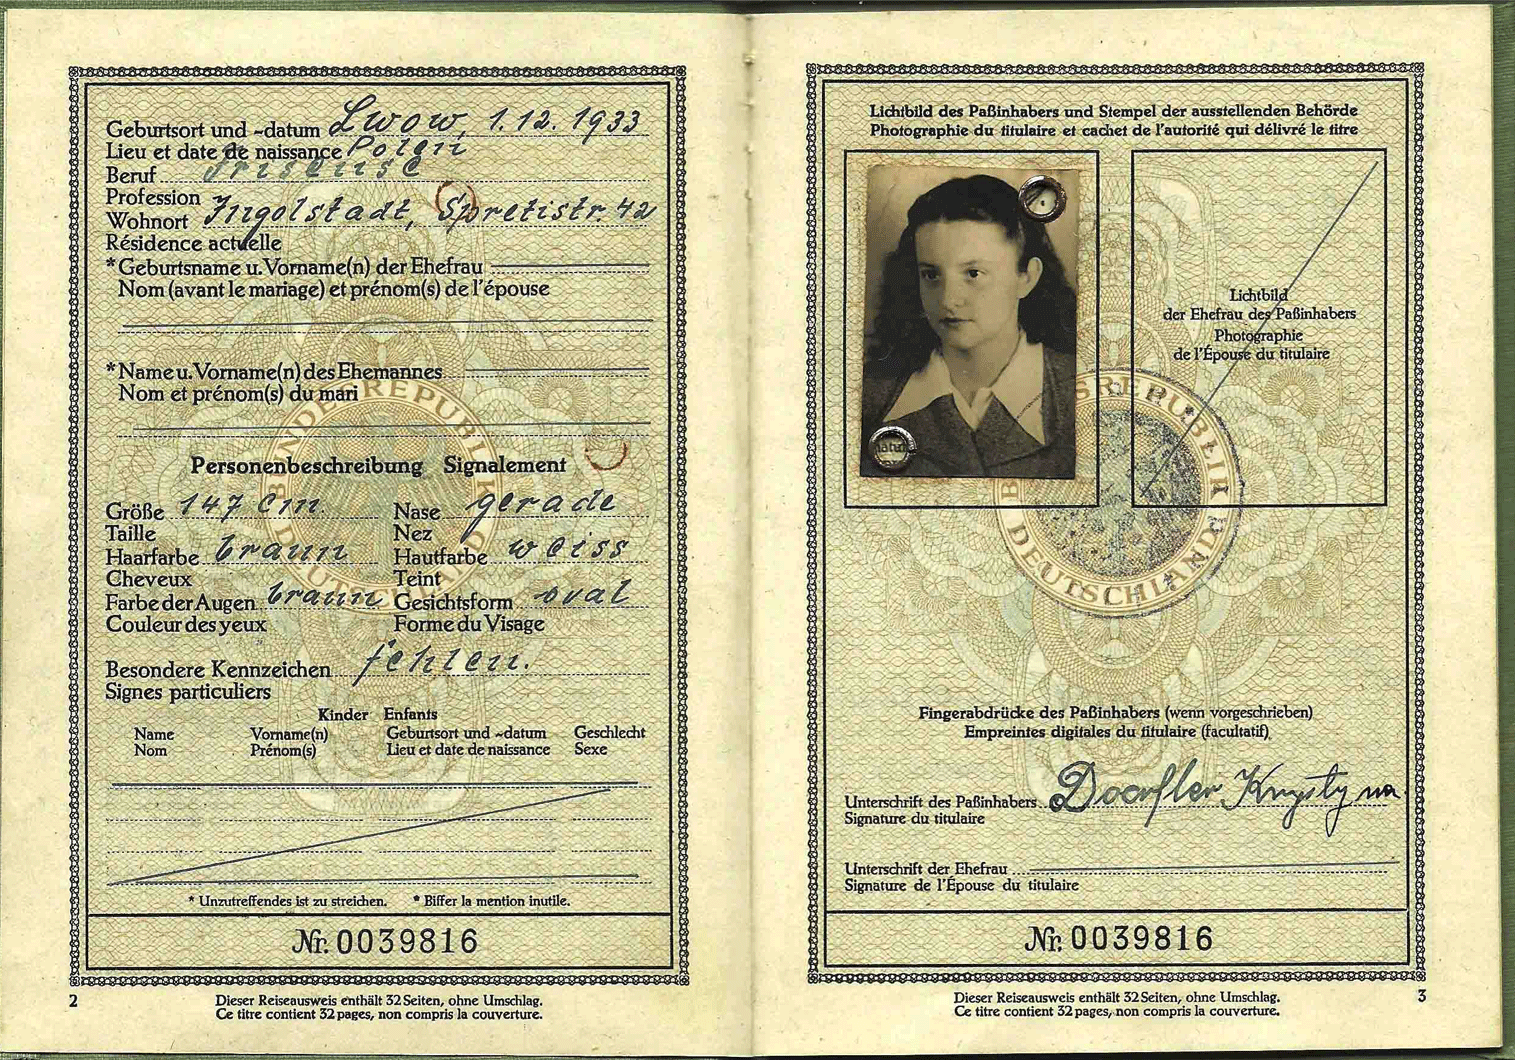 1952 Refugee travel document